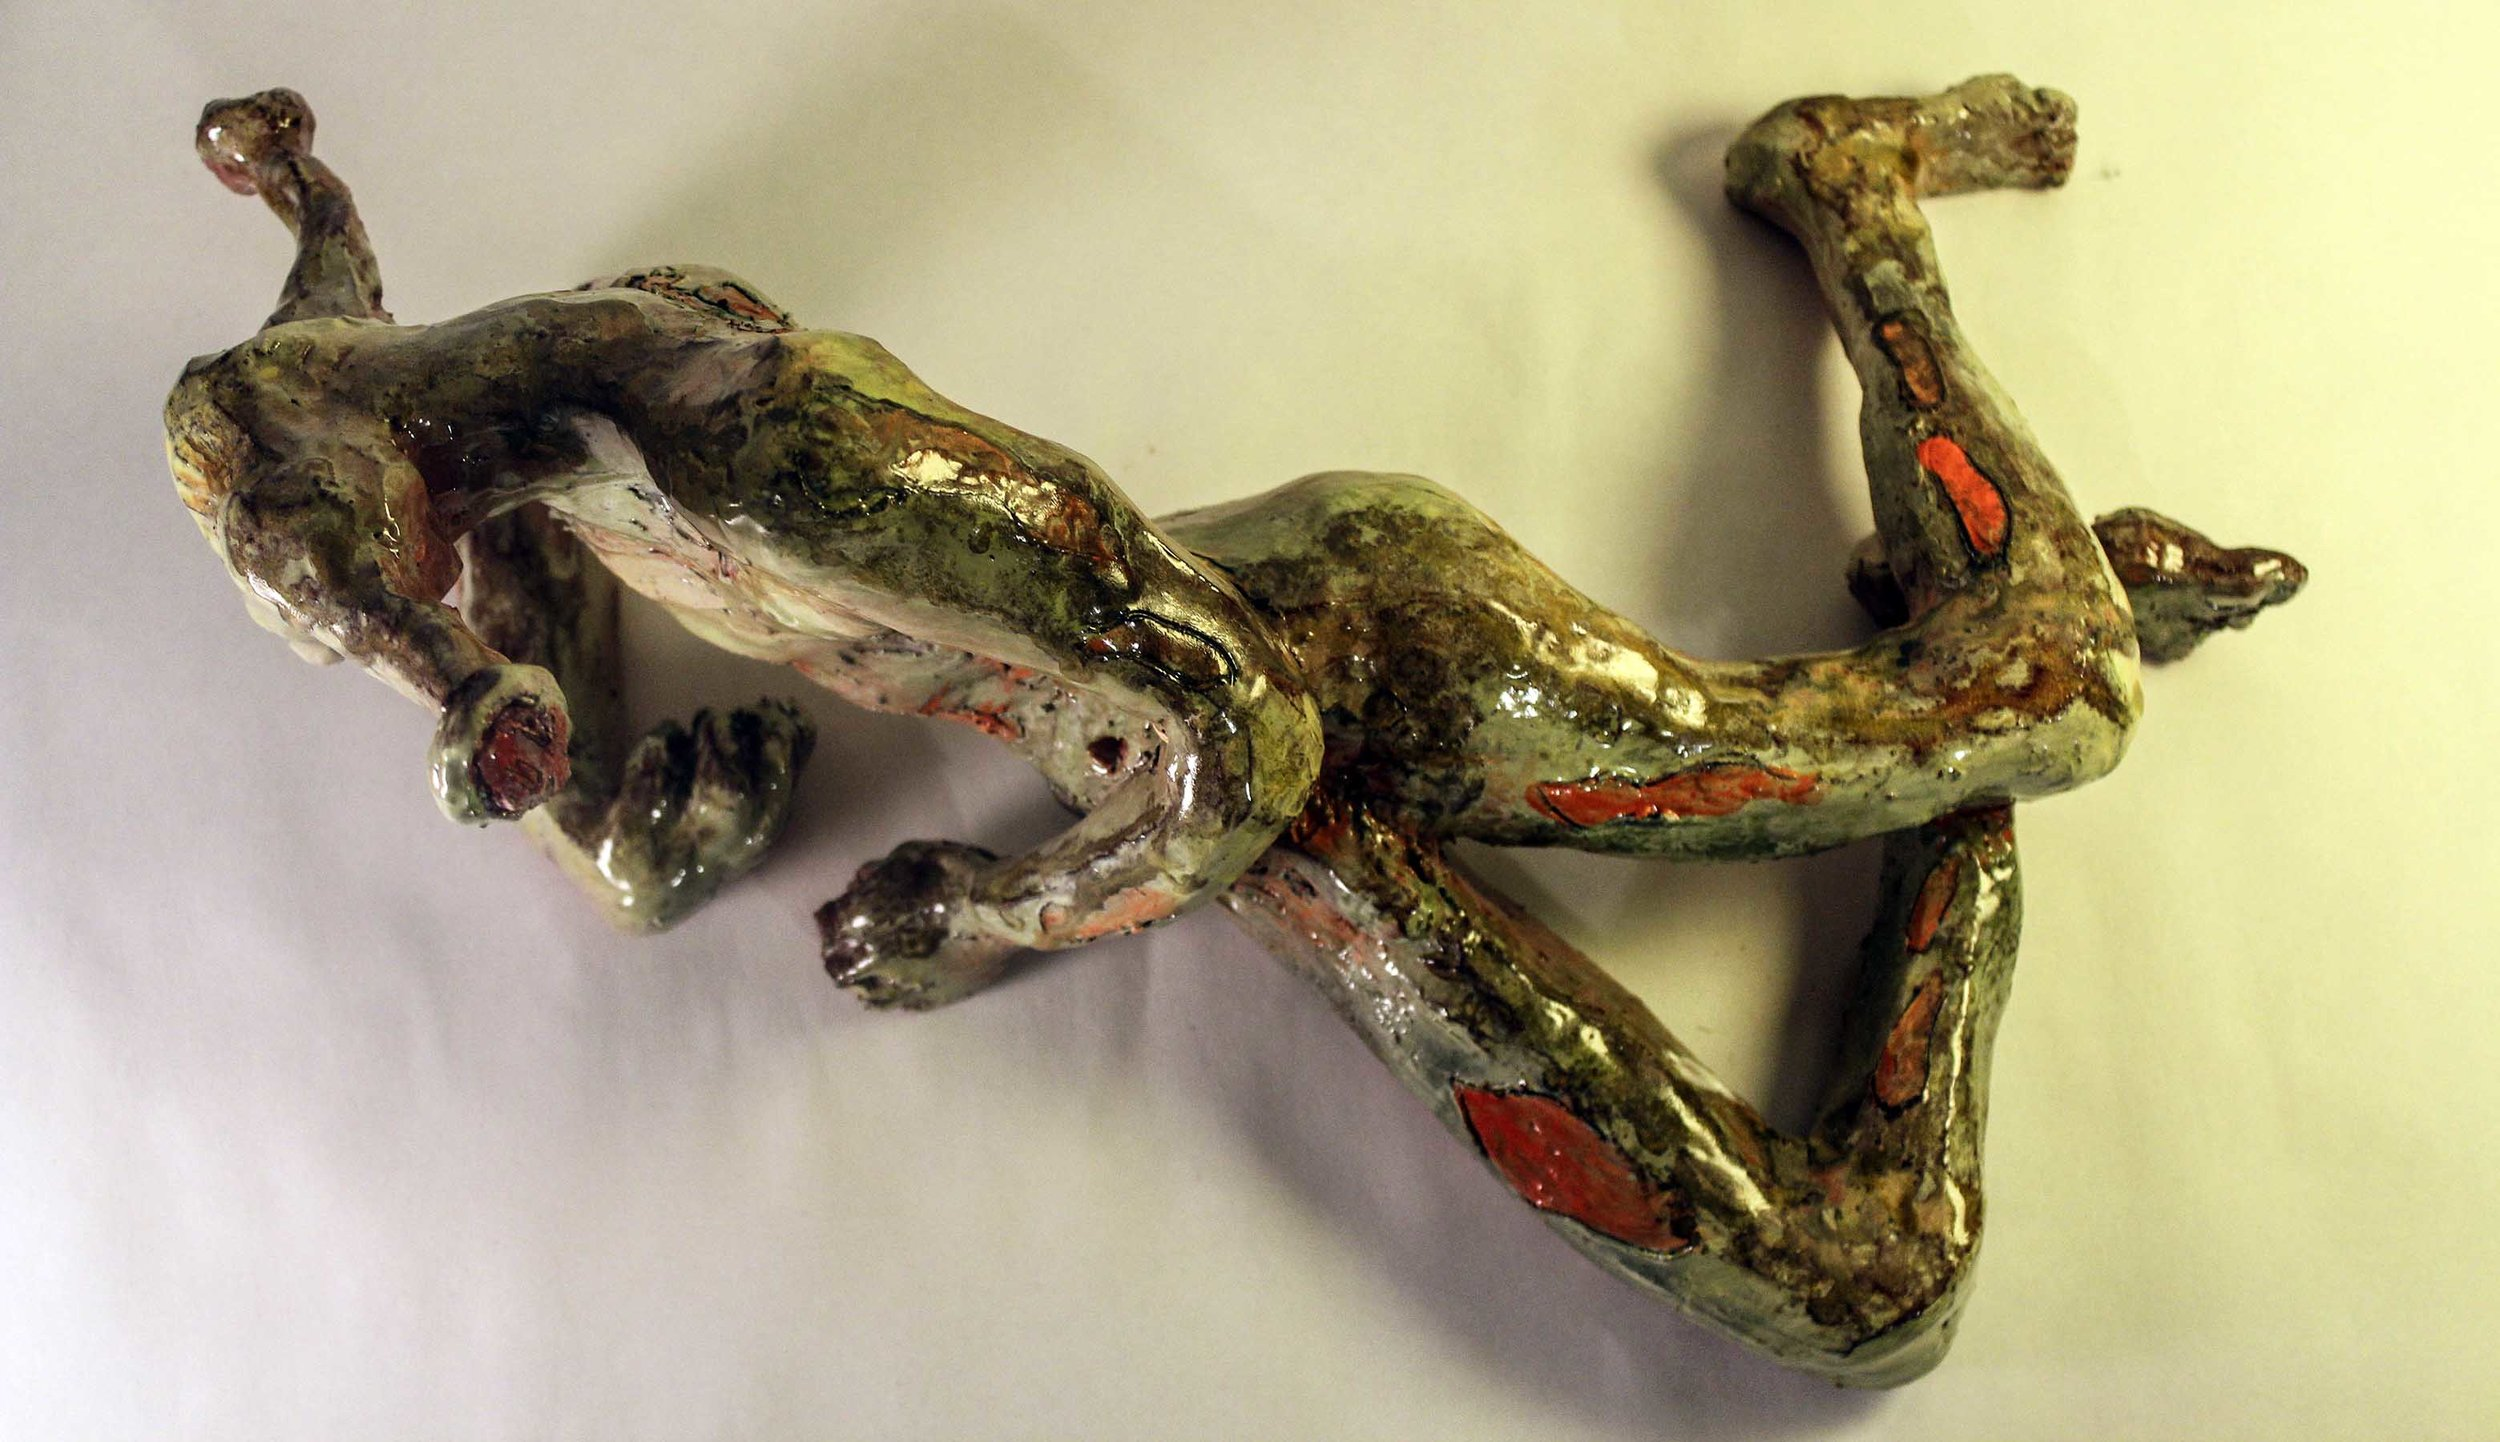 """""""Anubis, The Dragonfly and the Warrior"""" by Bailey Roman, 15x7x10in, ceramic and glaze (2017)"""